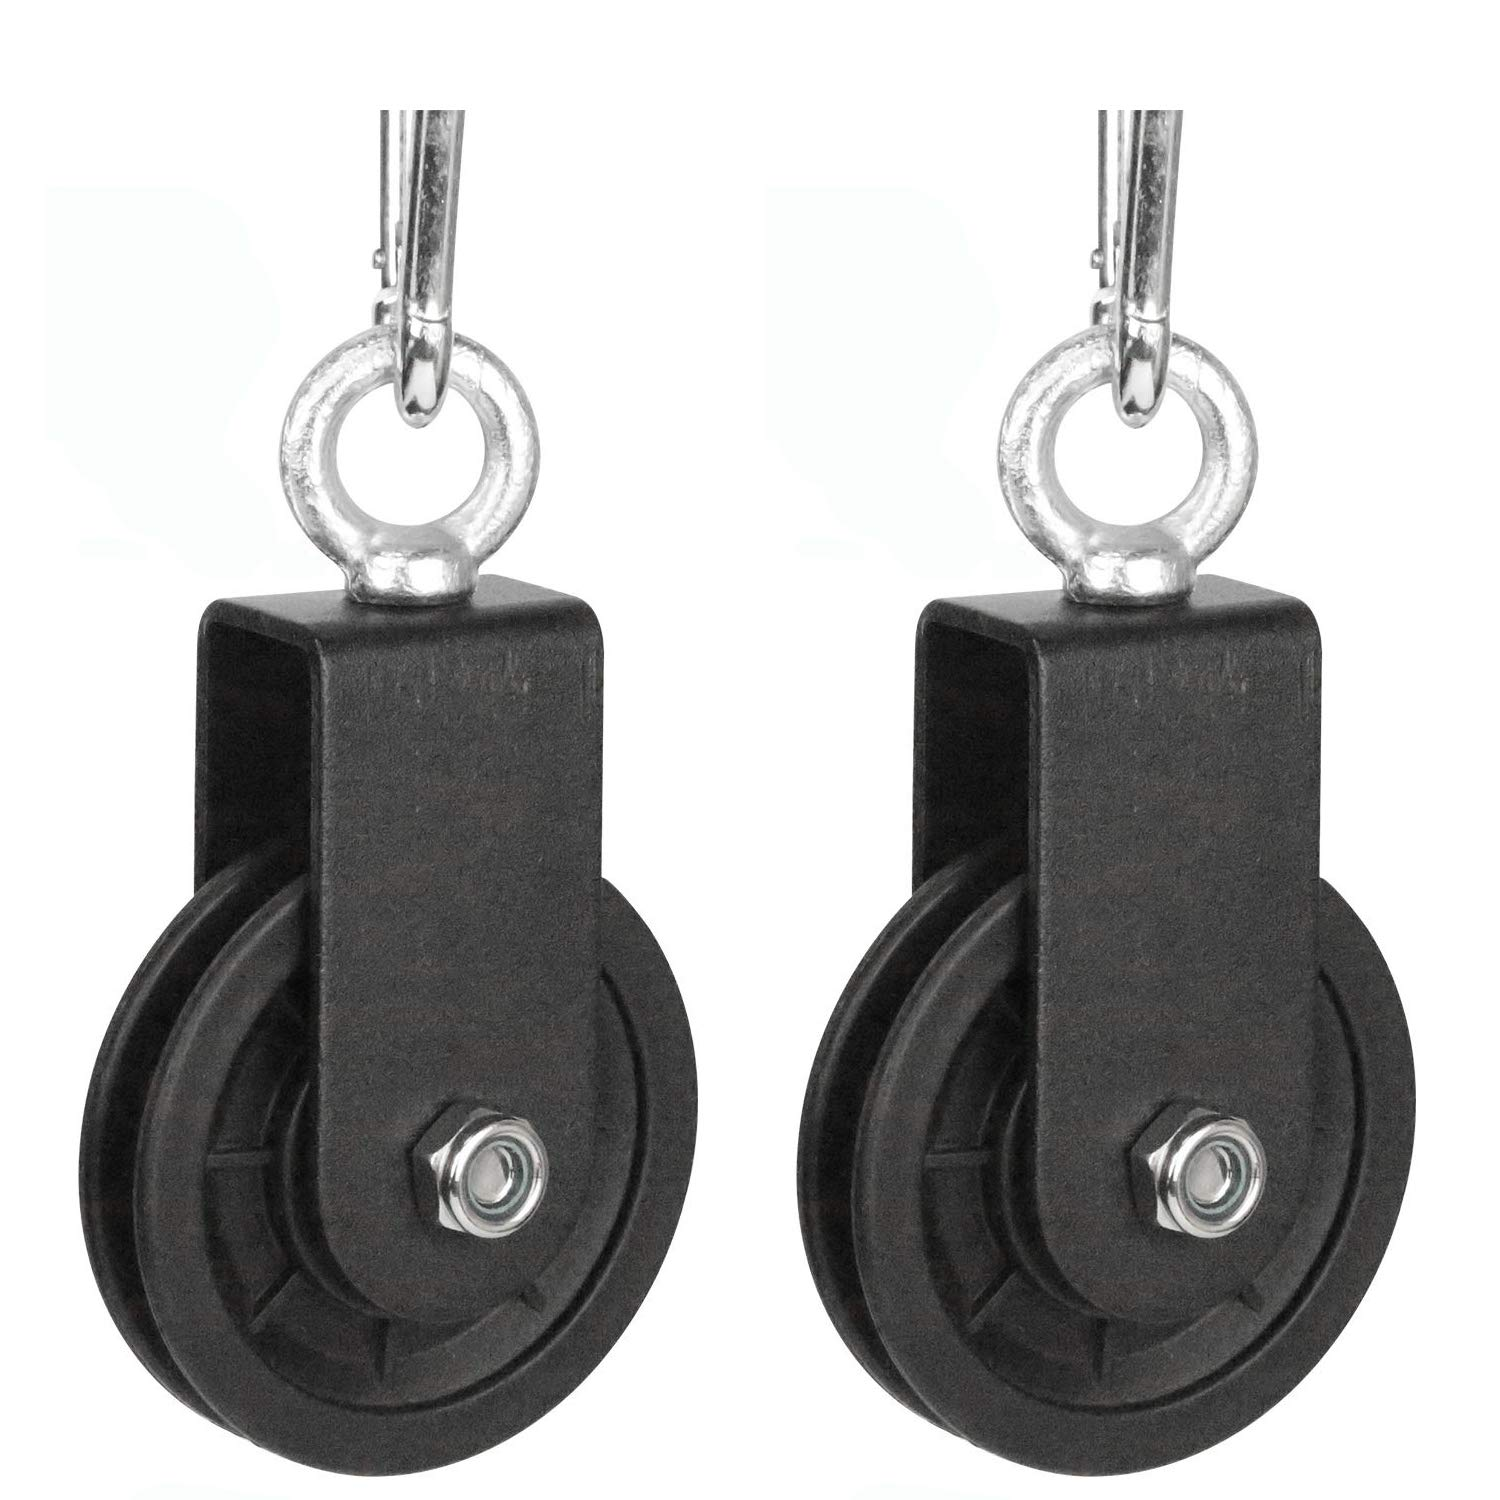 3.54 in 90 mm Silent Under blast sales Nylon Syste Fitness for Tucson Mall LAT Pulley